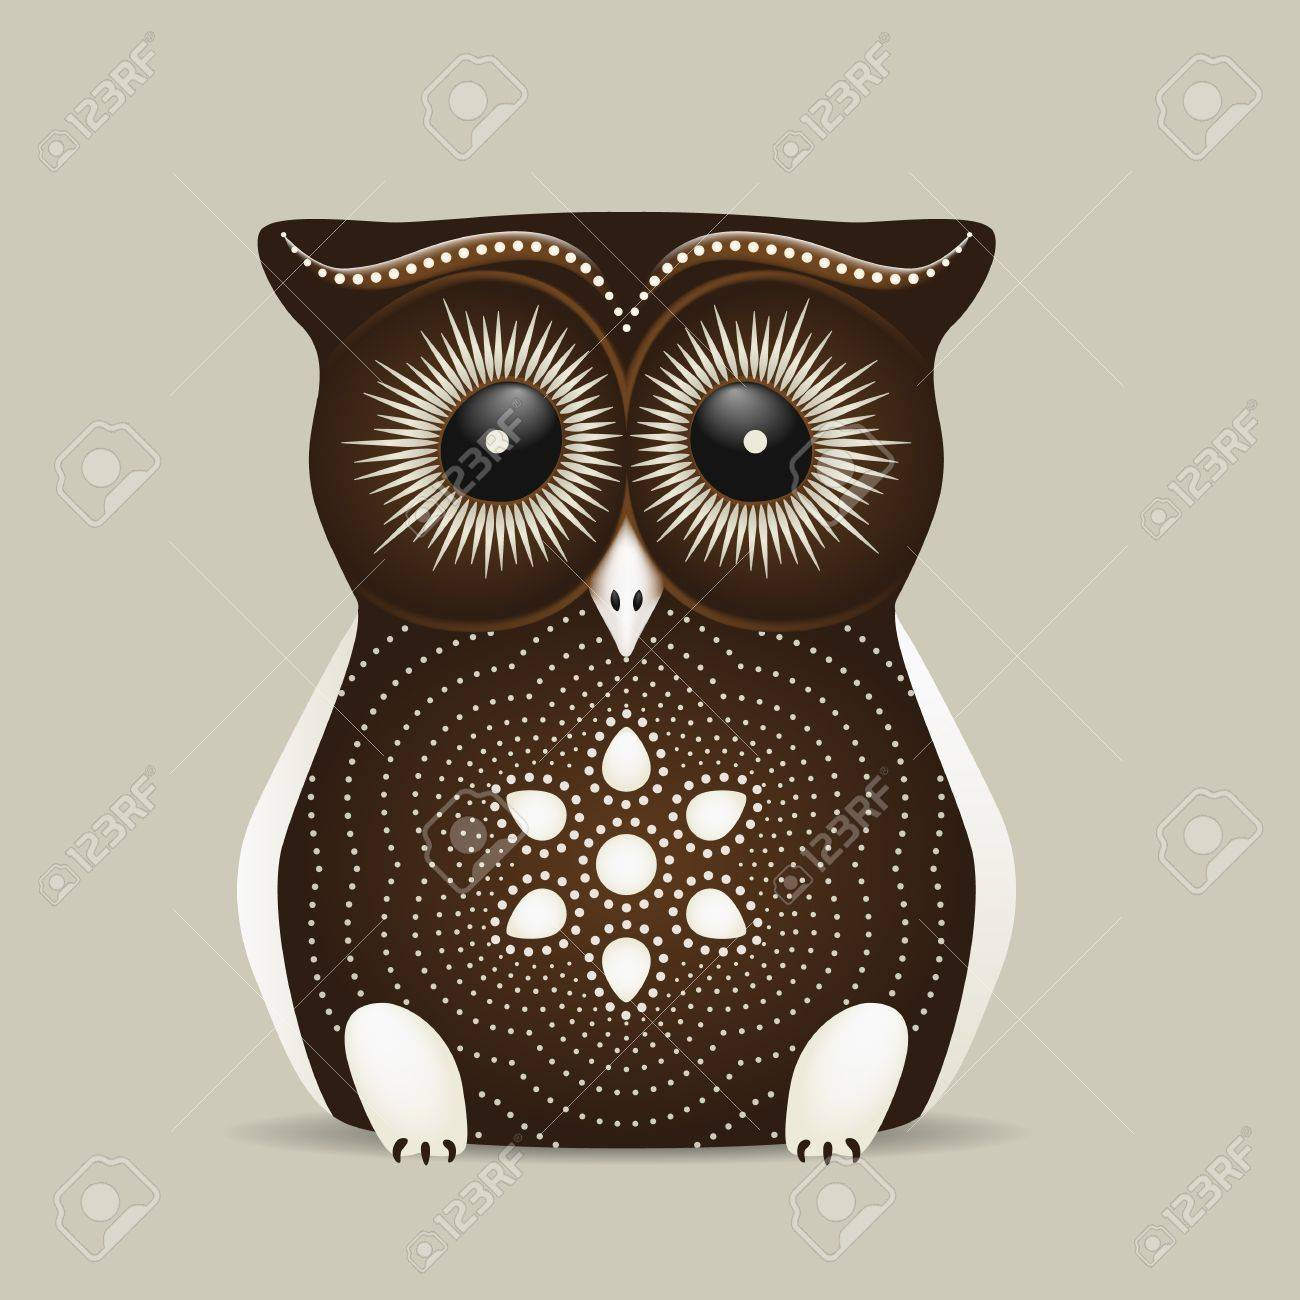 Cute brown owl with big eyes on a grey background Stock Vector - 14172580